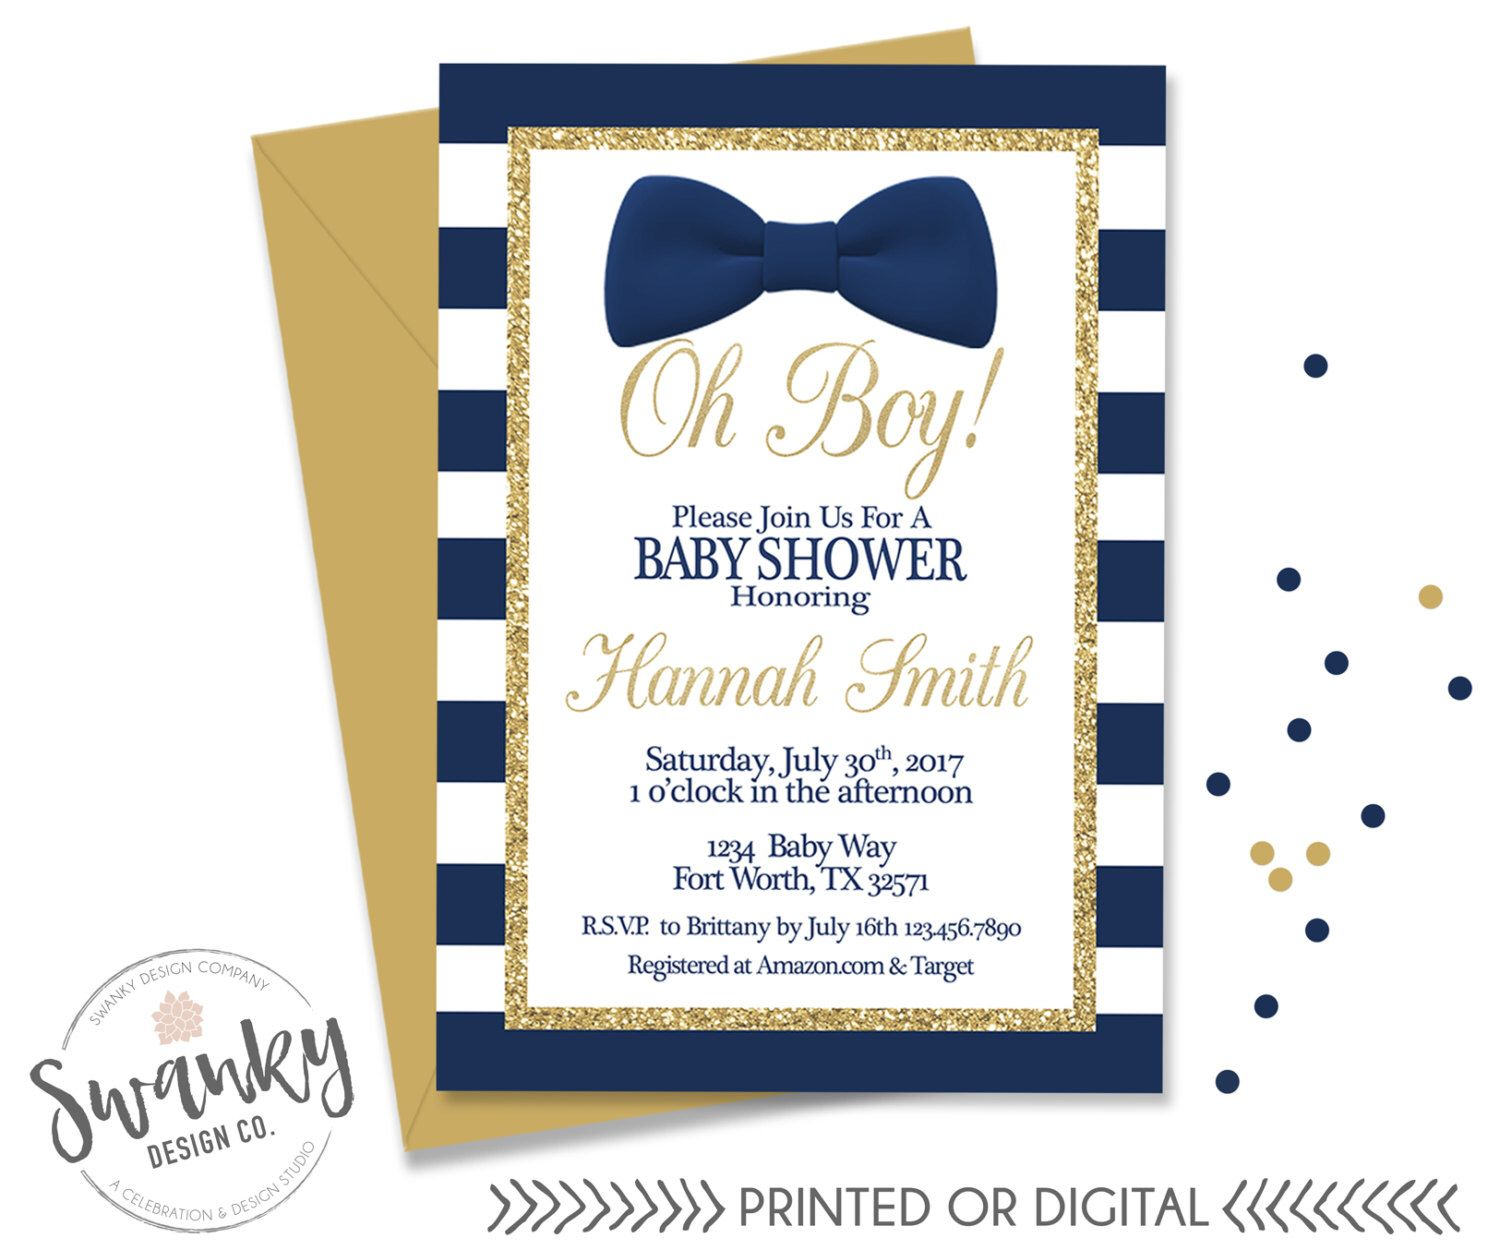 Oh Boy Baby Shower Invitation, Bowtie Baby Boy Shower, Navy and Gold ...